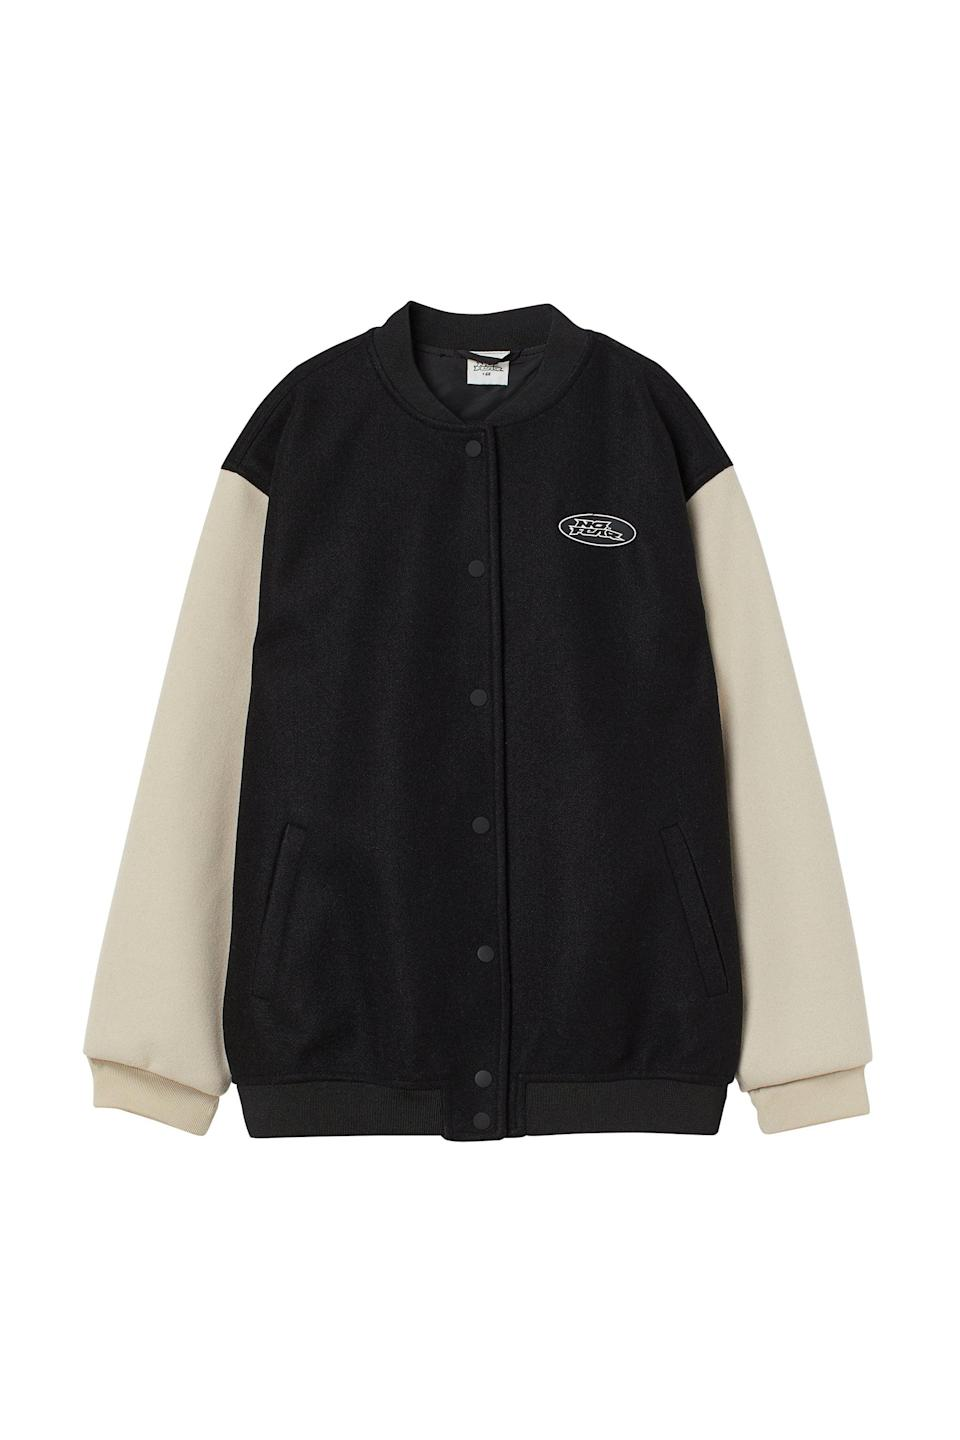 <p>Throw this <span>No Fear x H&amp;M Oversized Varsity Jacket</span> ($50) on when you want to add a little something extra to even the most basic outfit. We like it paired with a white t-shirt and straight leg jeans.</p>